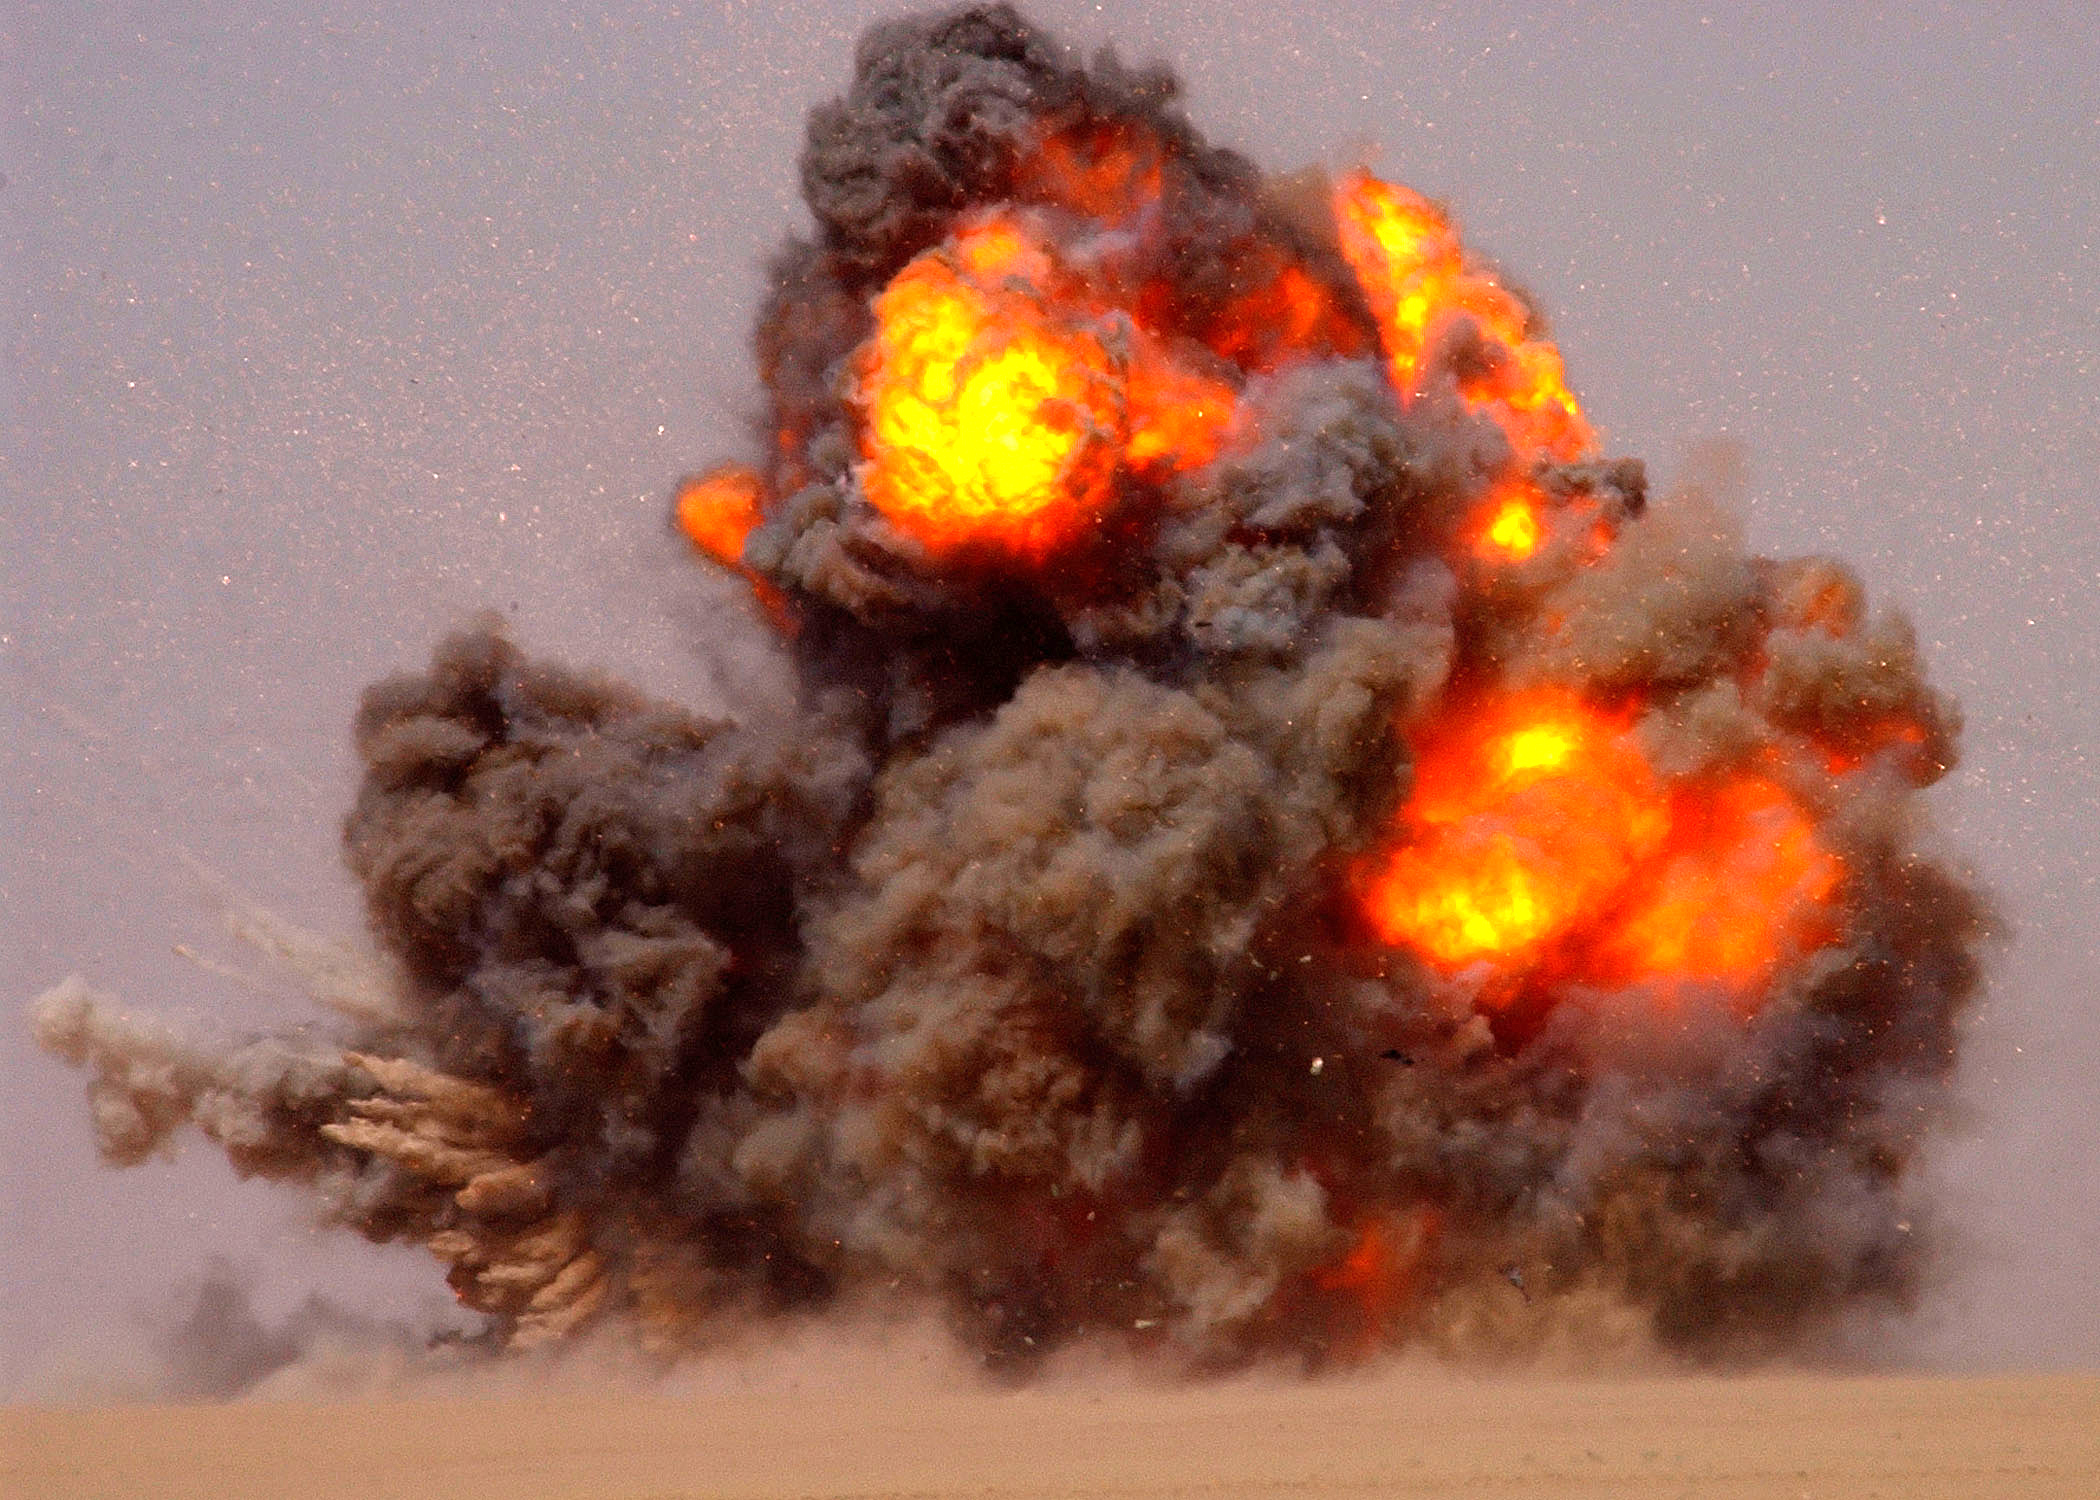 """020712-N-5471P-010 Udairi Range, Kuwait (Jul. 12, 2002) -- Explosive Ordnance Disposal (EOD) technicians explode or """"Cook off"""" old ammunition and ordnance that is no longer usable.  EOD technicians use C-4 Plastic explosive charges to completely destroy the weapons.  EOD teams from the U.S. Army, Navy, Air Force, and coalition forces conduct training exercises to improve joint capabilities between the services.  U.S. Navy photo by PhotographerÕs Mate 2nd Class Aaron Peterson.  (RELEASED)"""